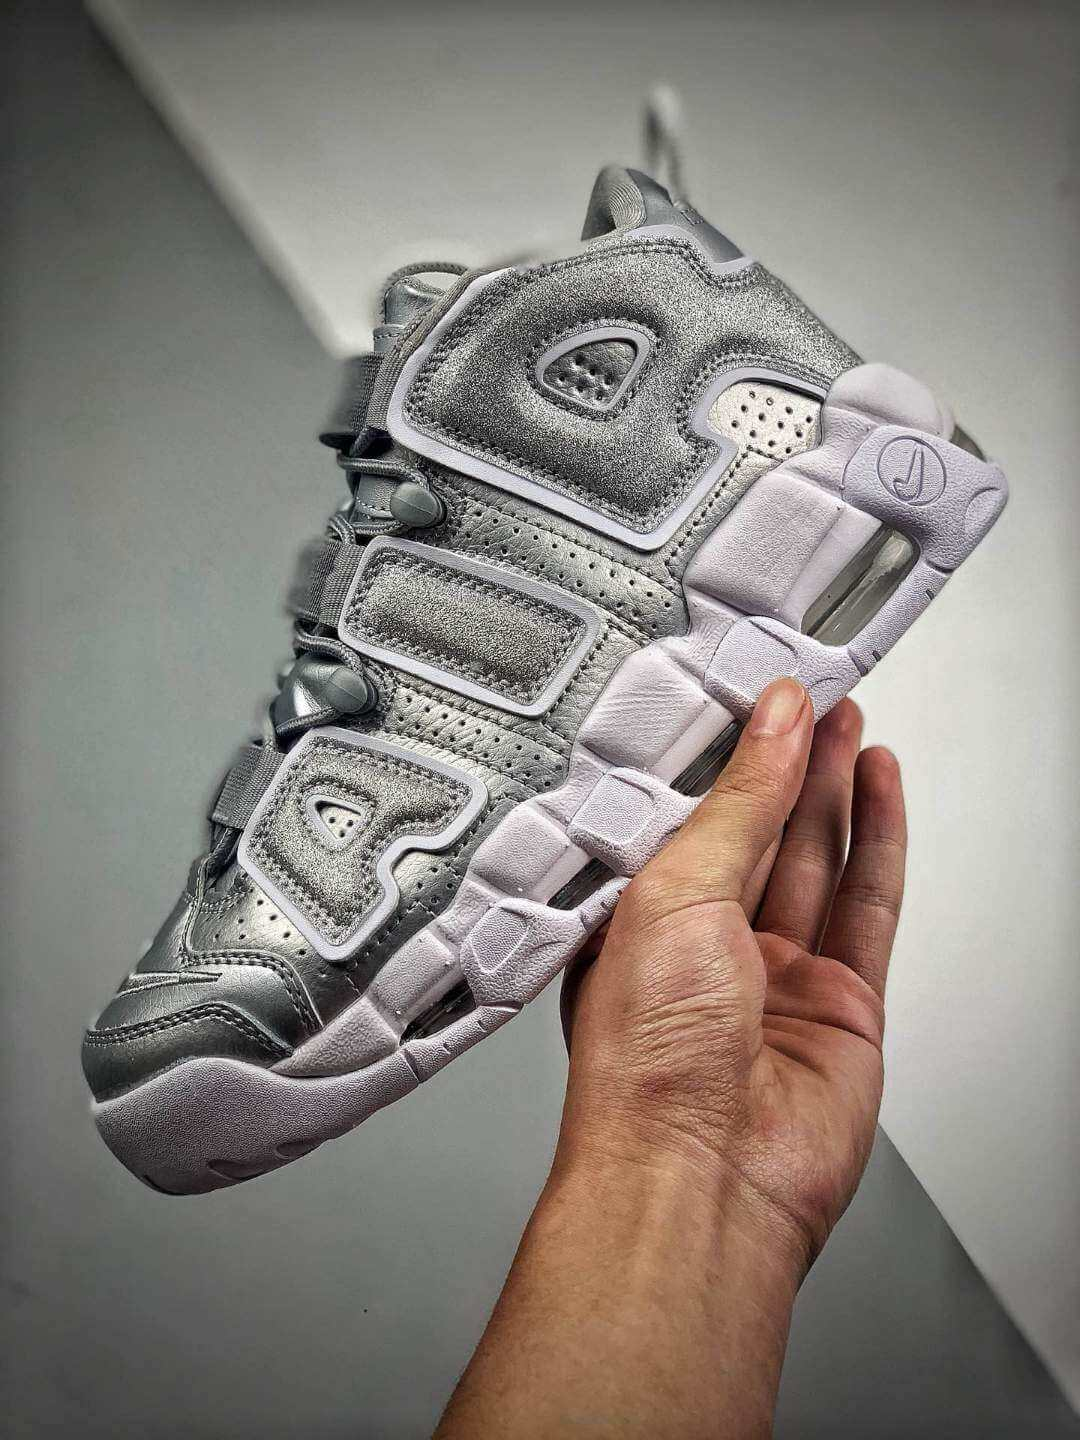 The Nike Air More Uptempo Loud and Clear Basketball Shoes Metallic Silver Leather Upper Quality RepSneaker 04